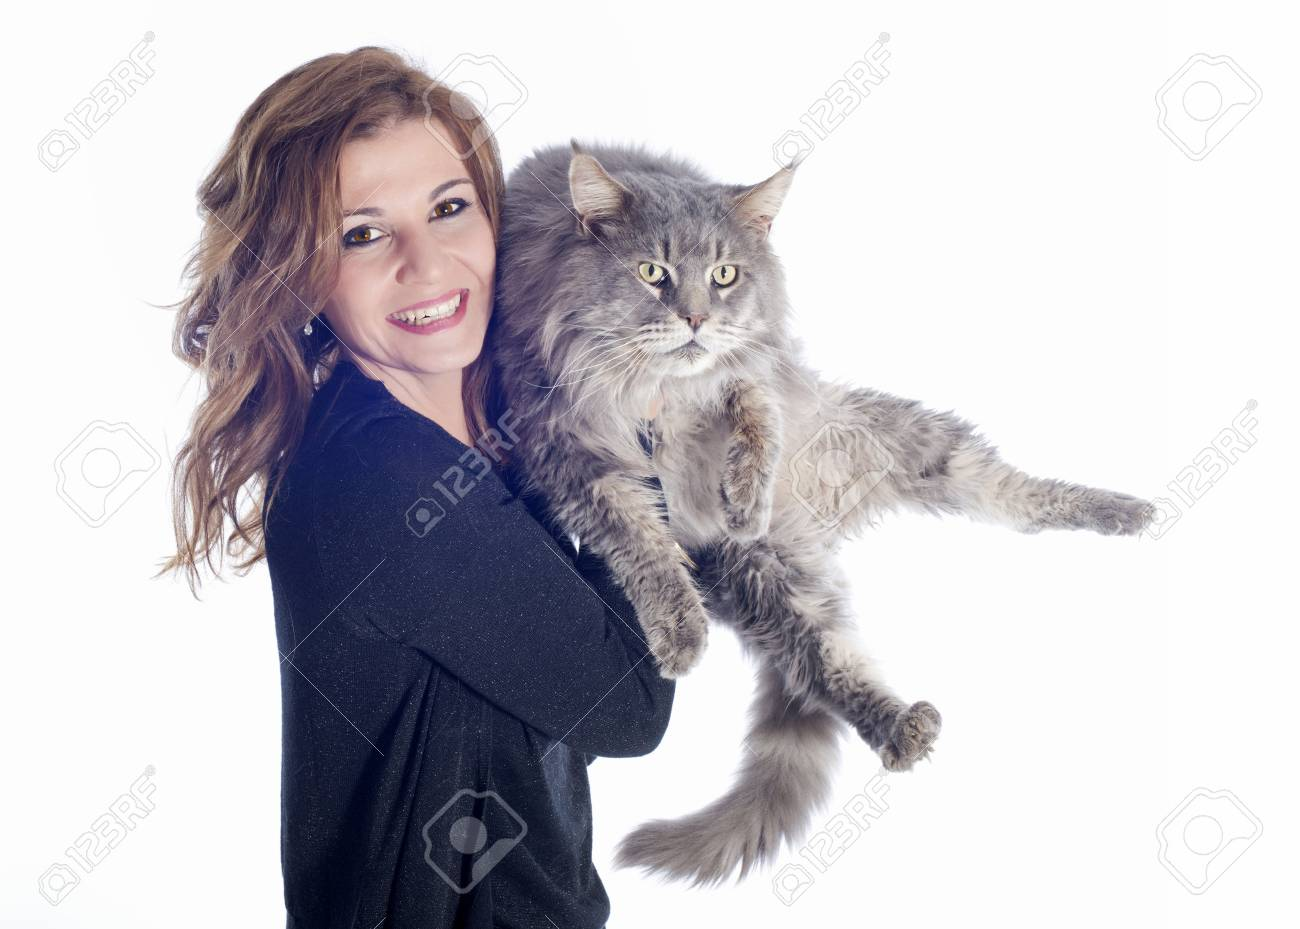 portrait of a purebred  maine coon cat and woman on a white background Stock Photo - 16883320